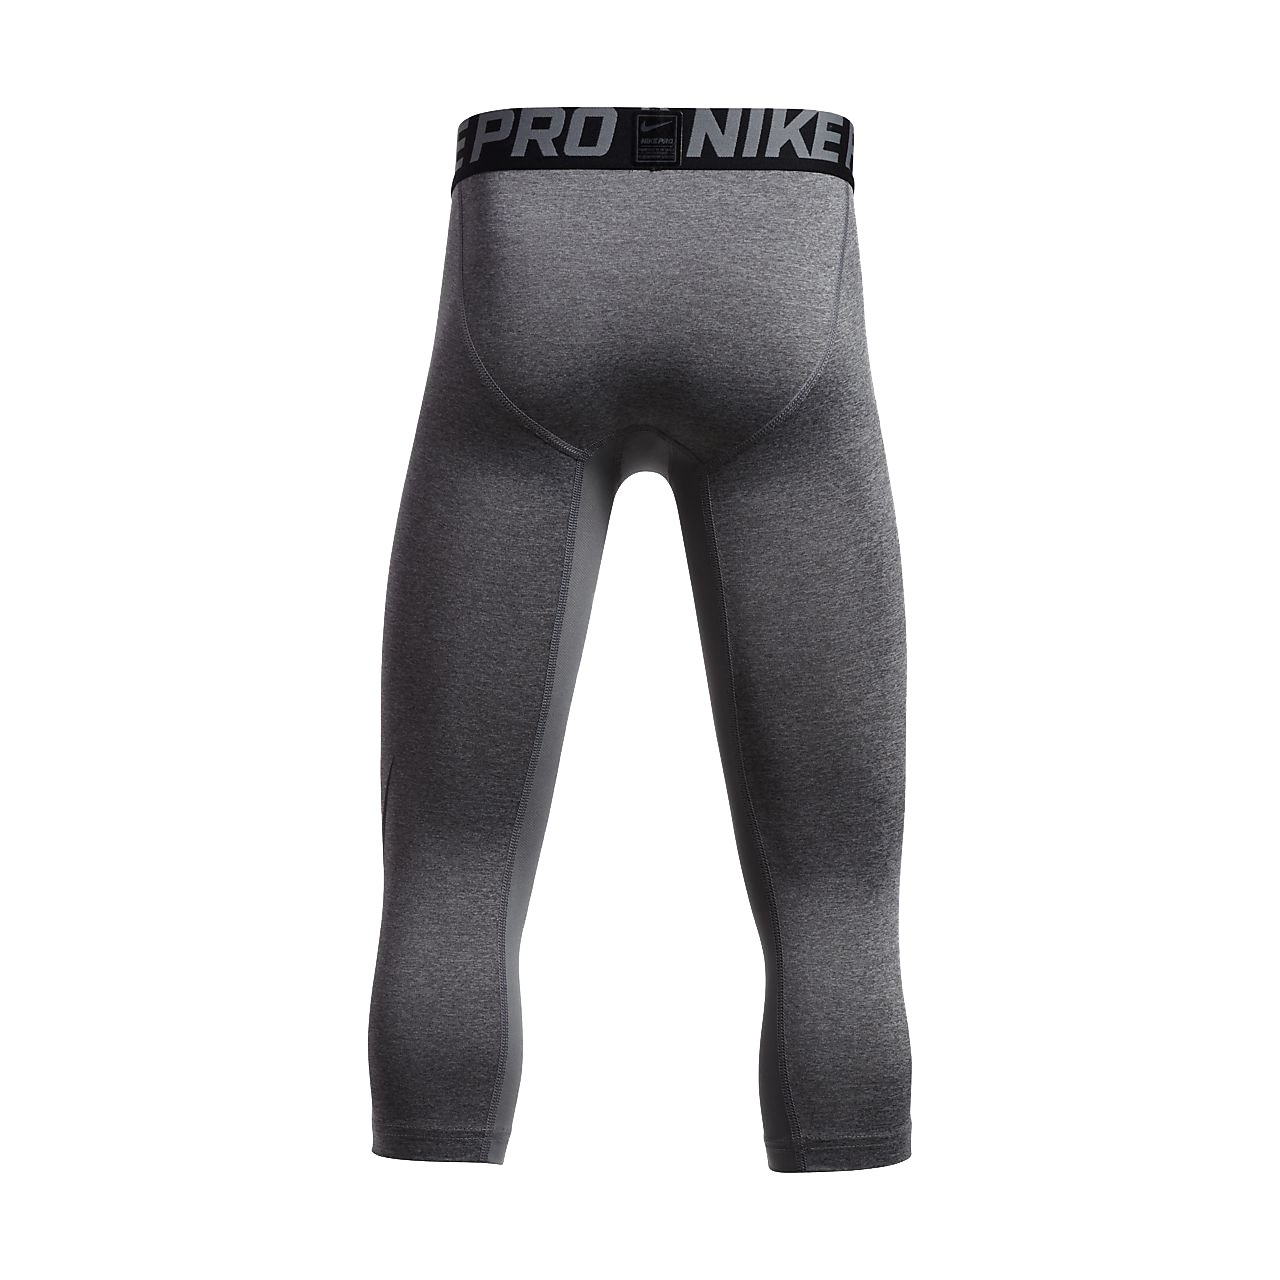 7c105e68cd Amazon.com: Nike Boys Cool Hbr Compression 3/4 Tight Youth (Little Big Kids):  Clothing